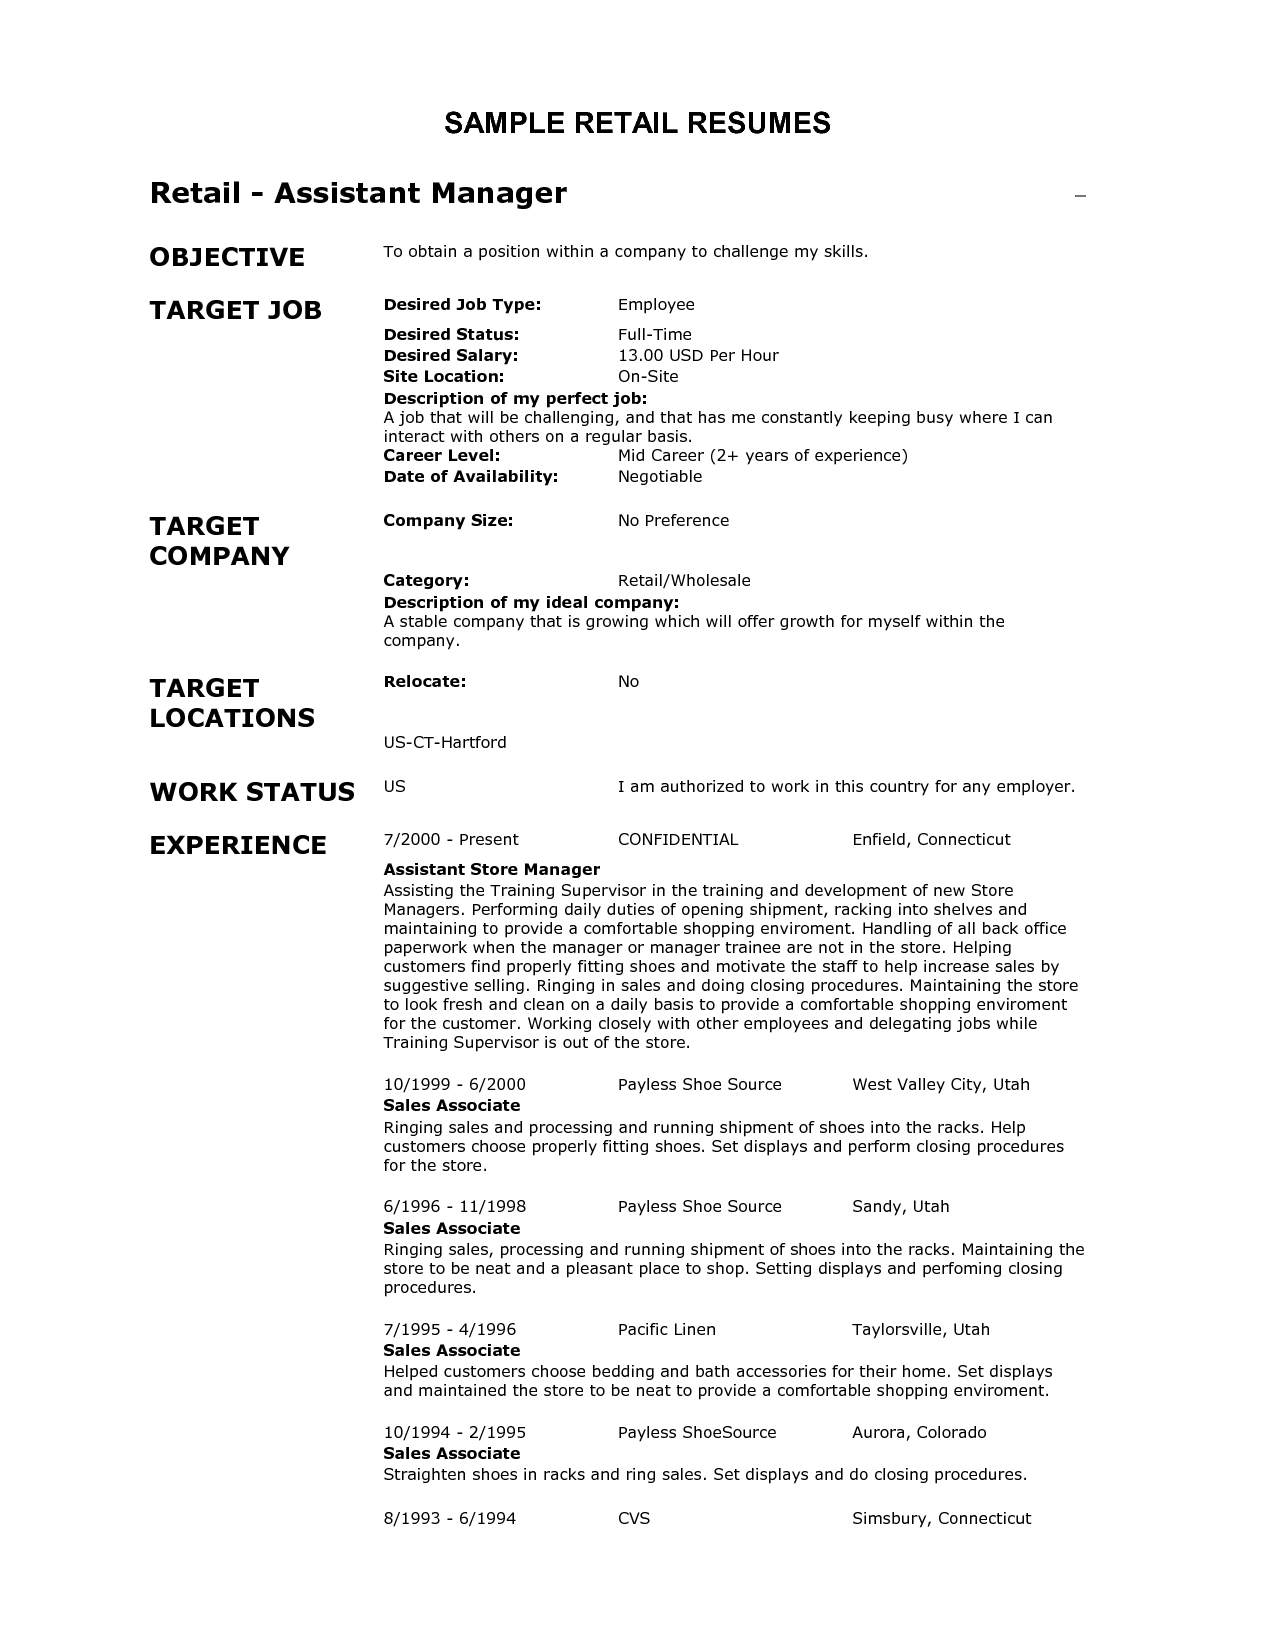 examples of objectives on resumes for retail